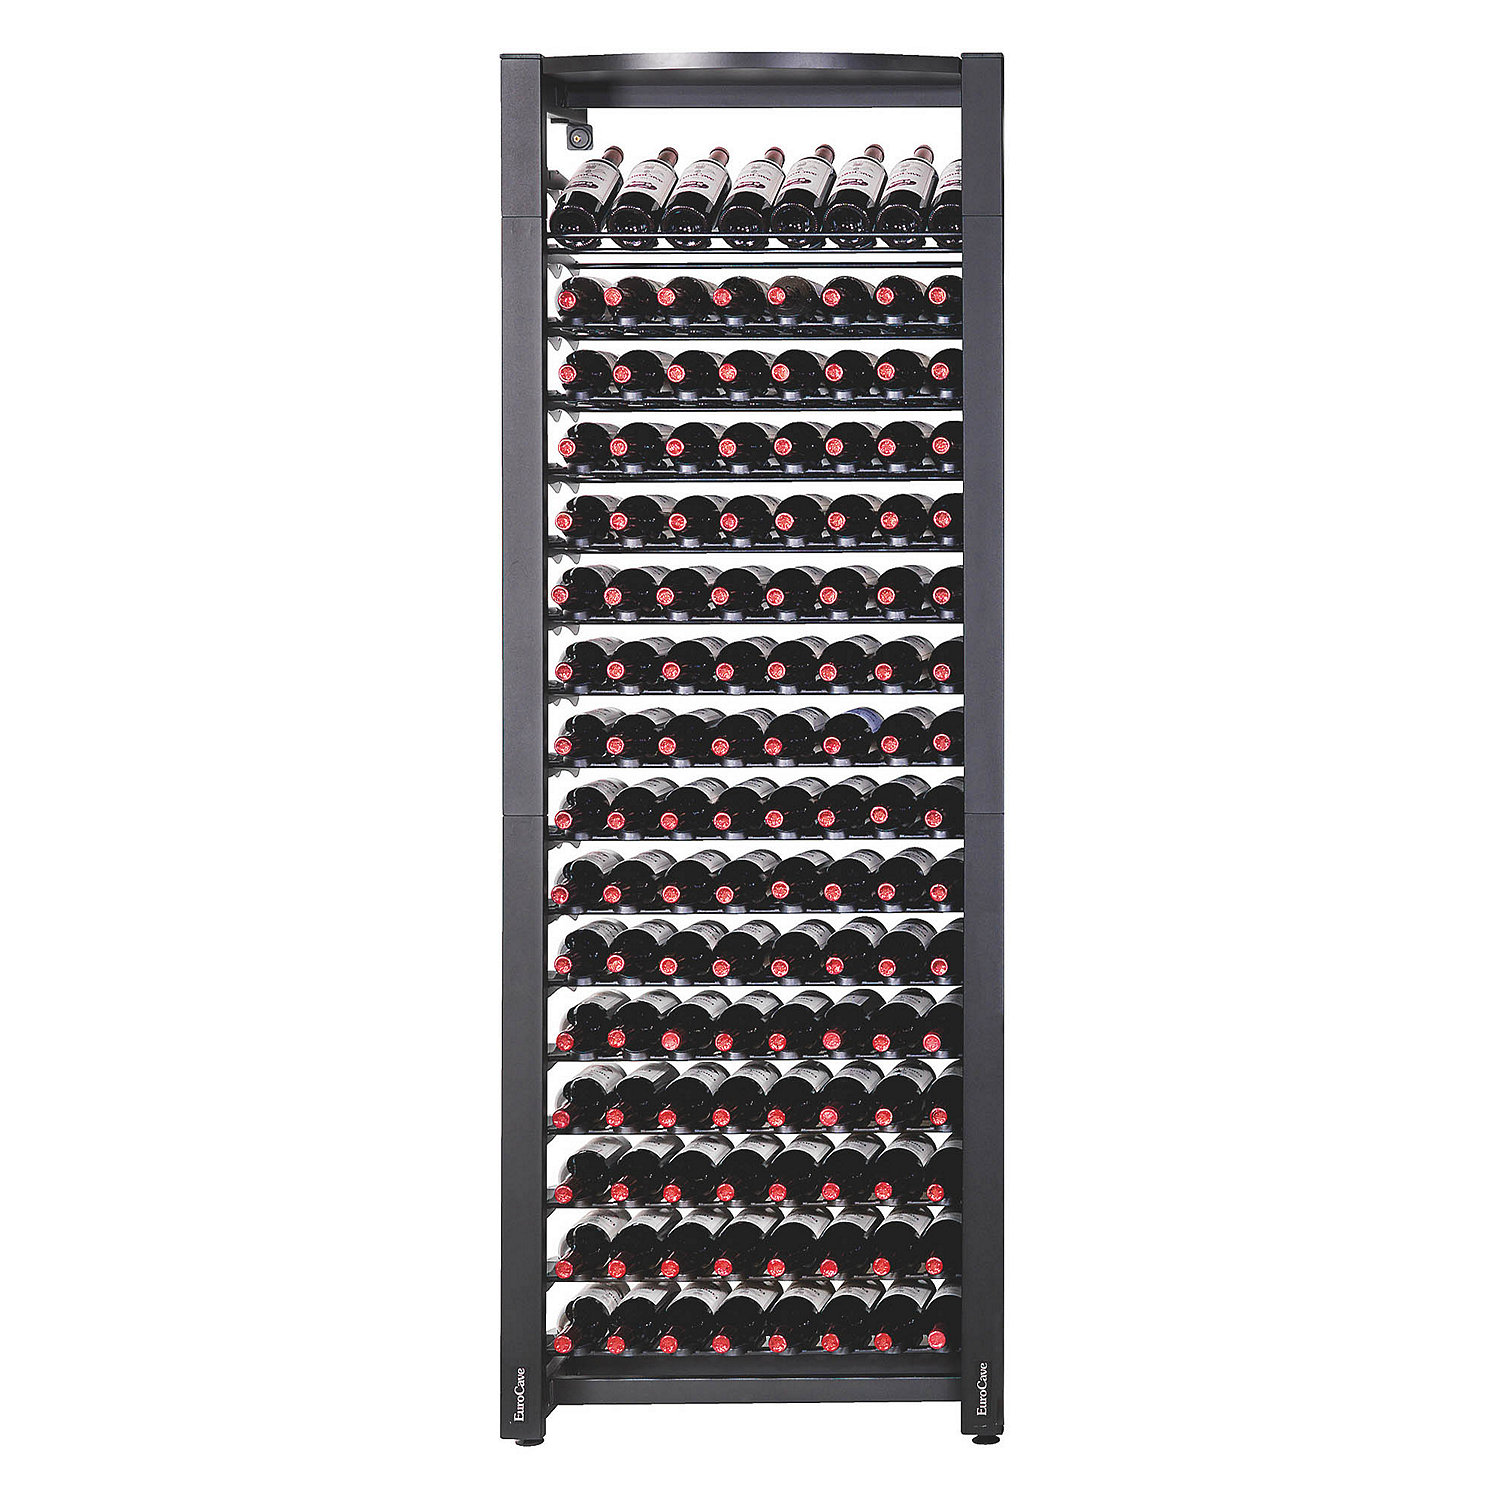 Metal Wine Racks Eurocave Modulosteel 1 Column Wine Rack